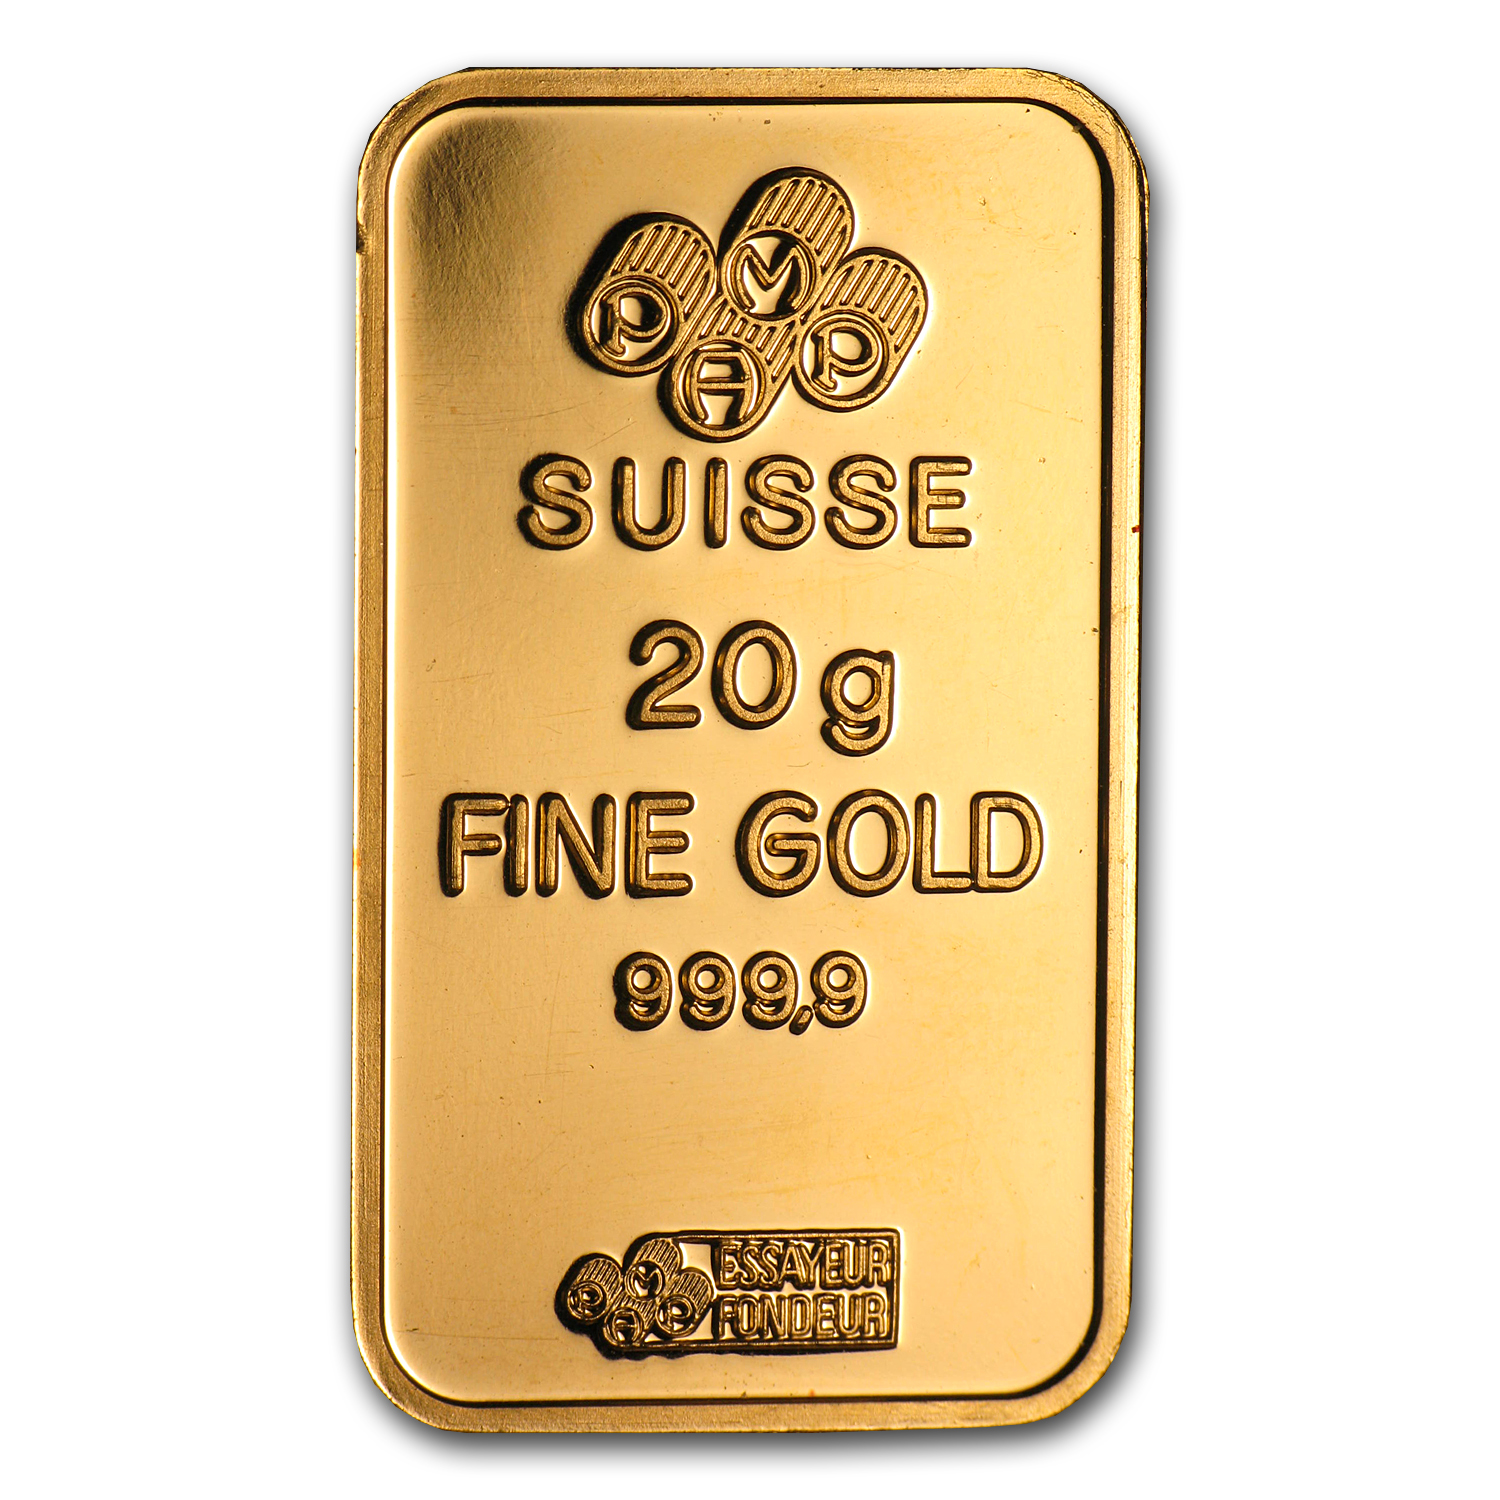 20 gram Gold Bars - Pamp Suisse (No Assay)